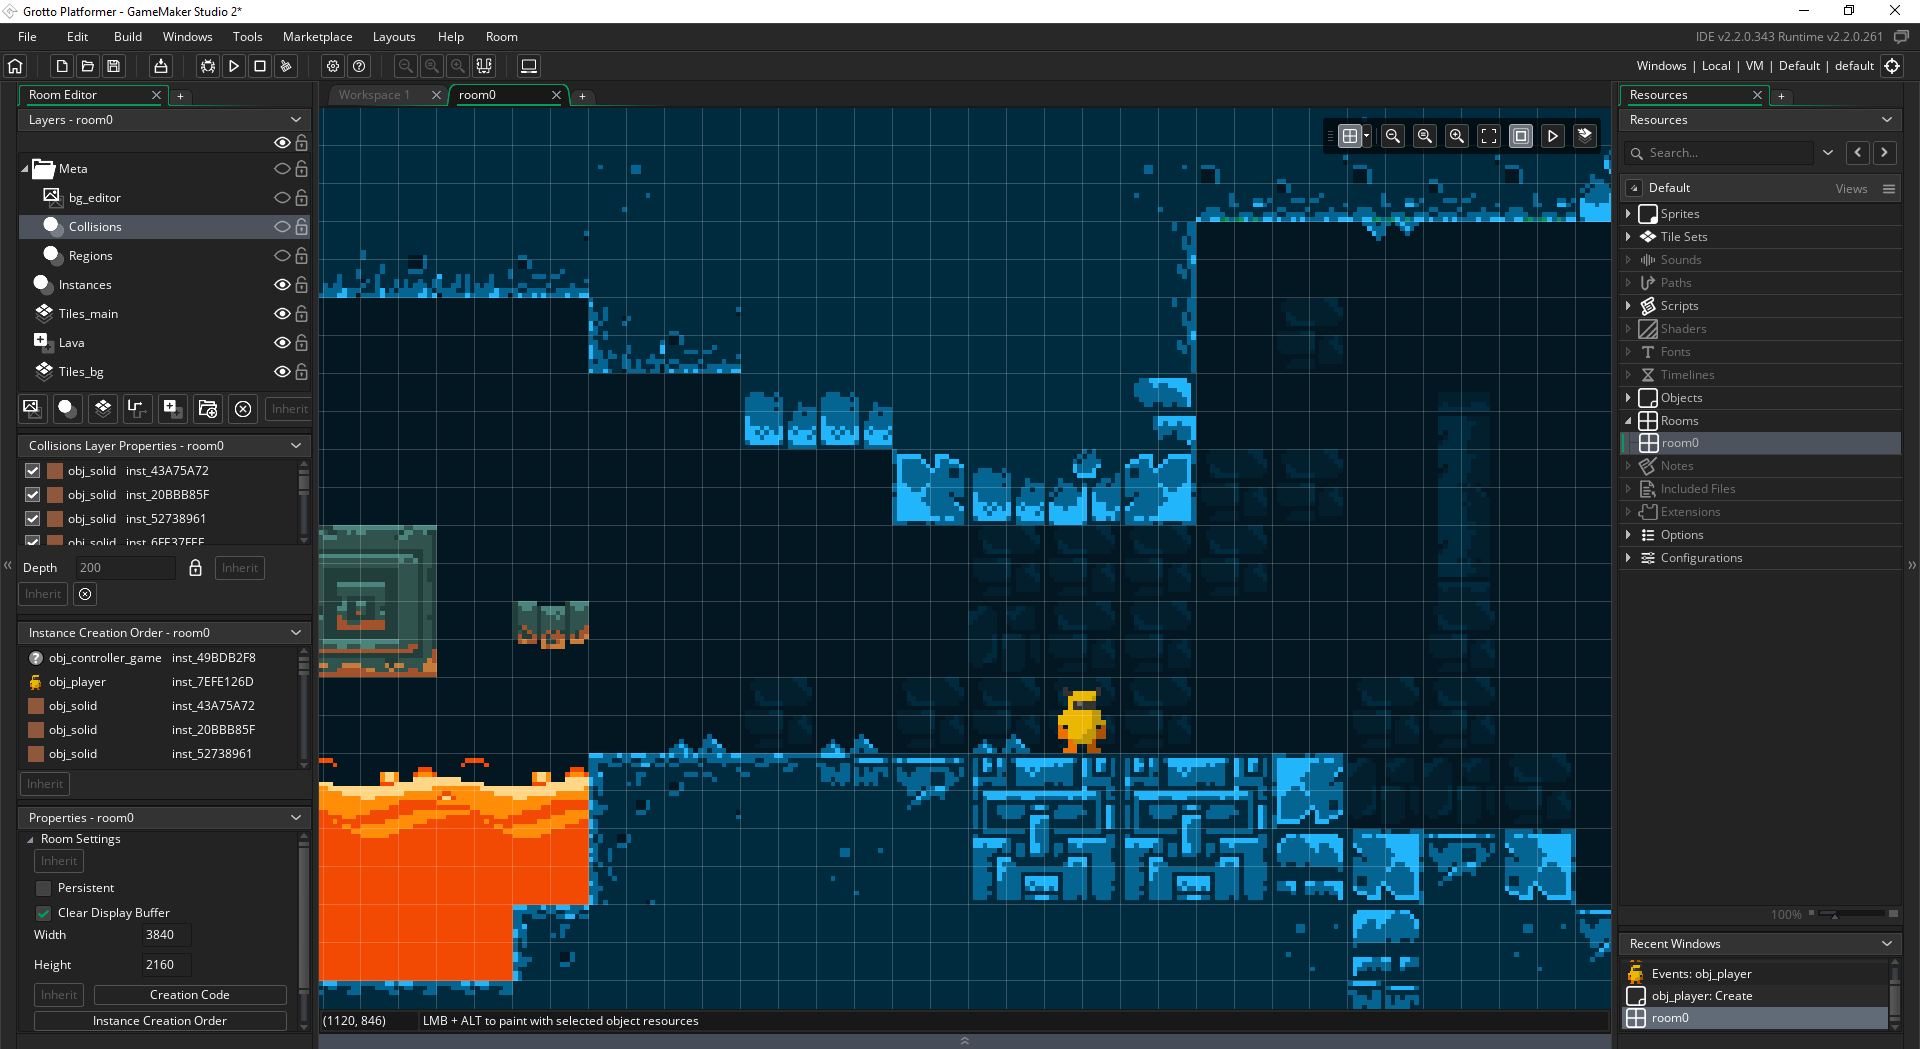 2D Platformer in GameMaker Studio 2